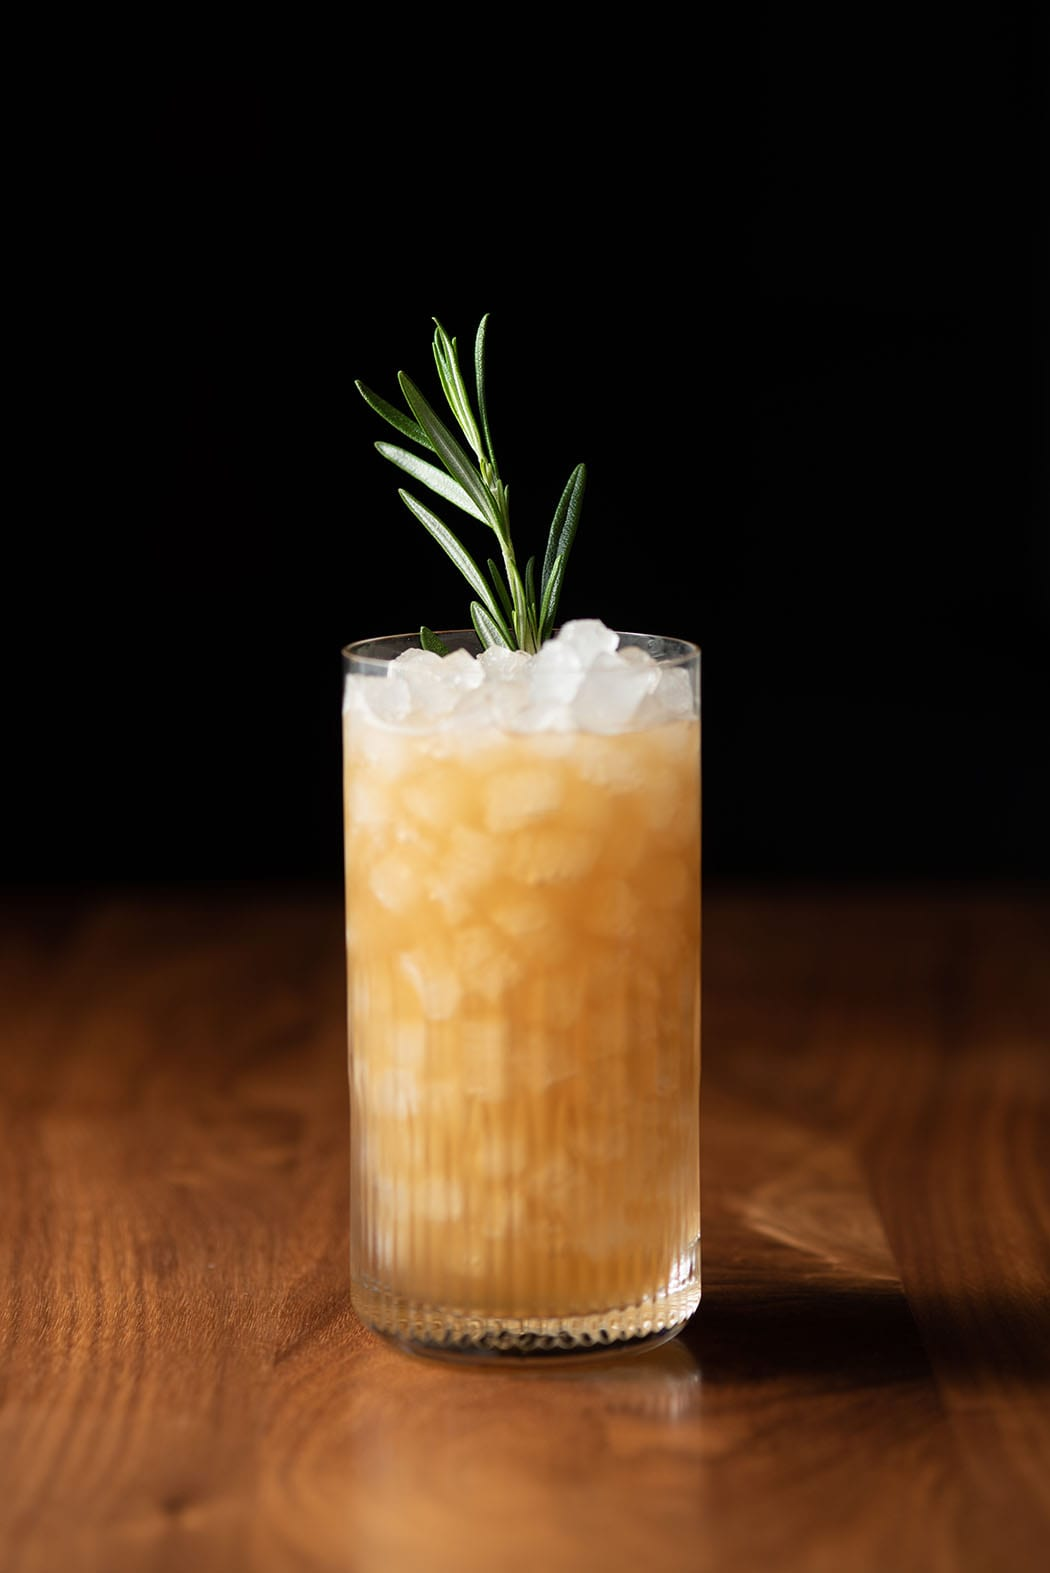 Pear and Tequila cocktail